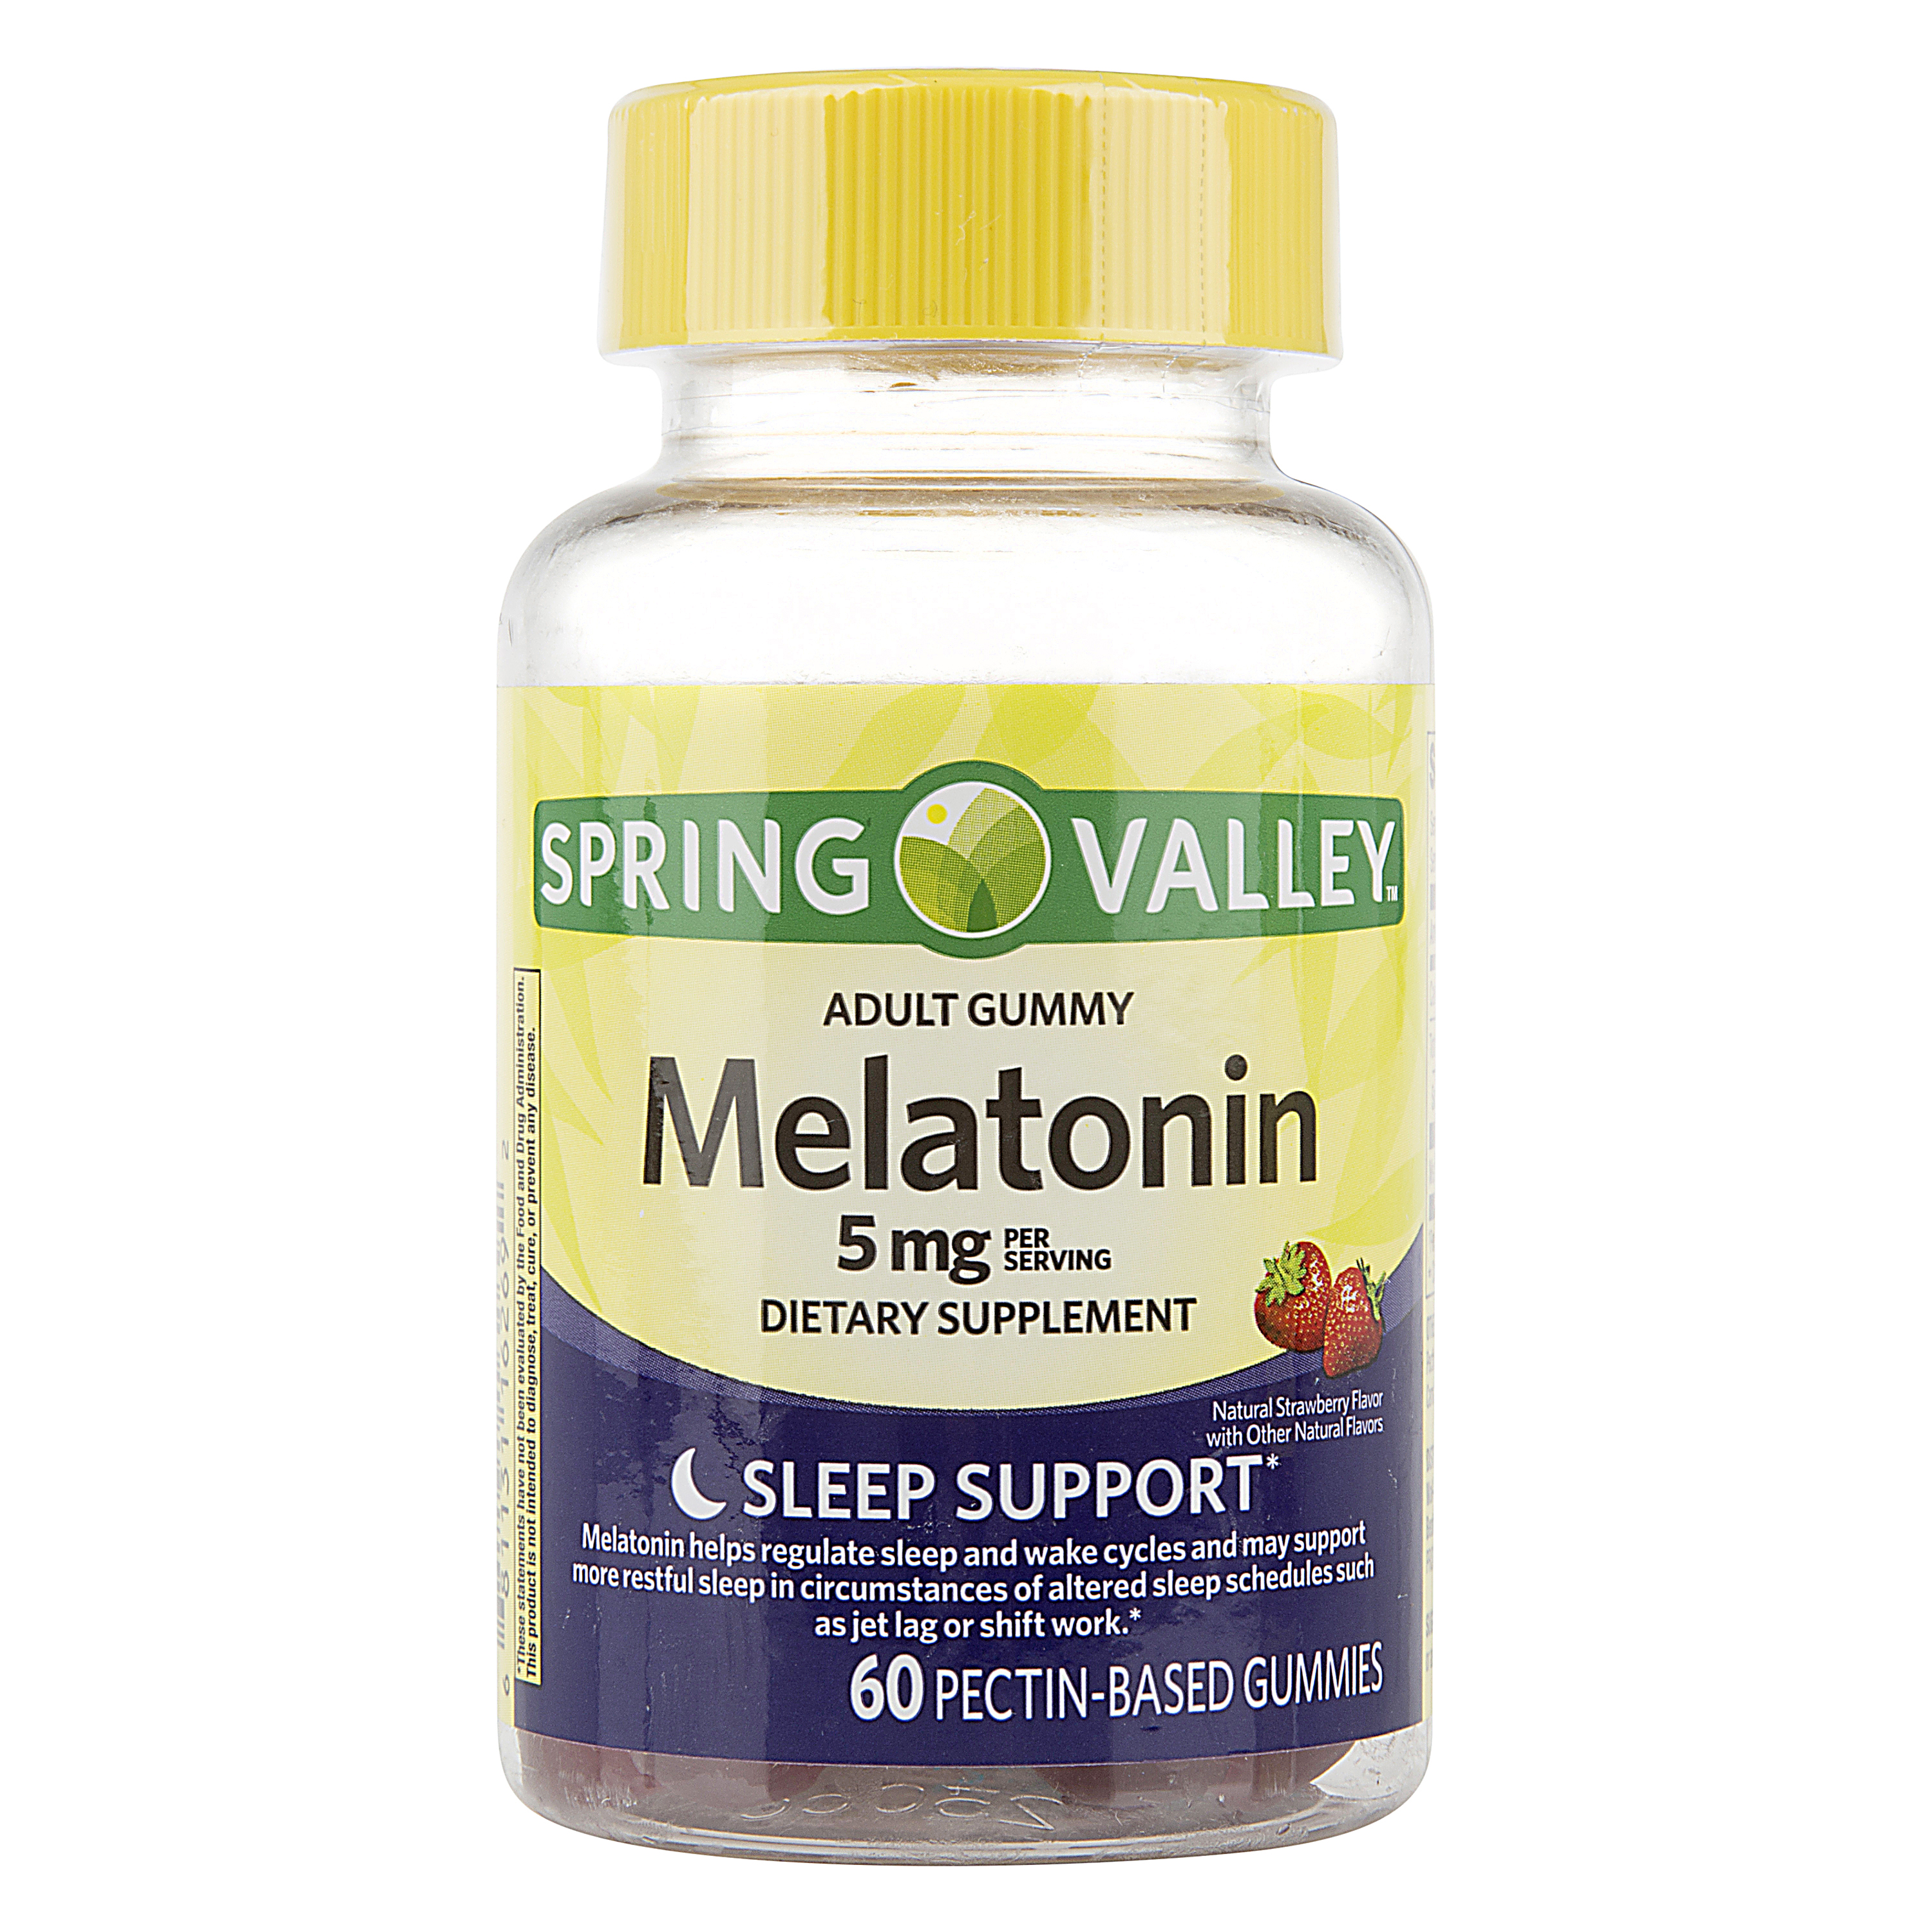 Spring Valley Melatonin Adult Pectin-Based Gummies, 5 mg, 60 count